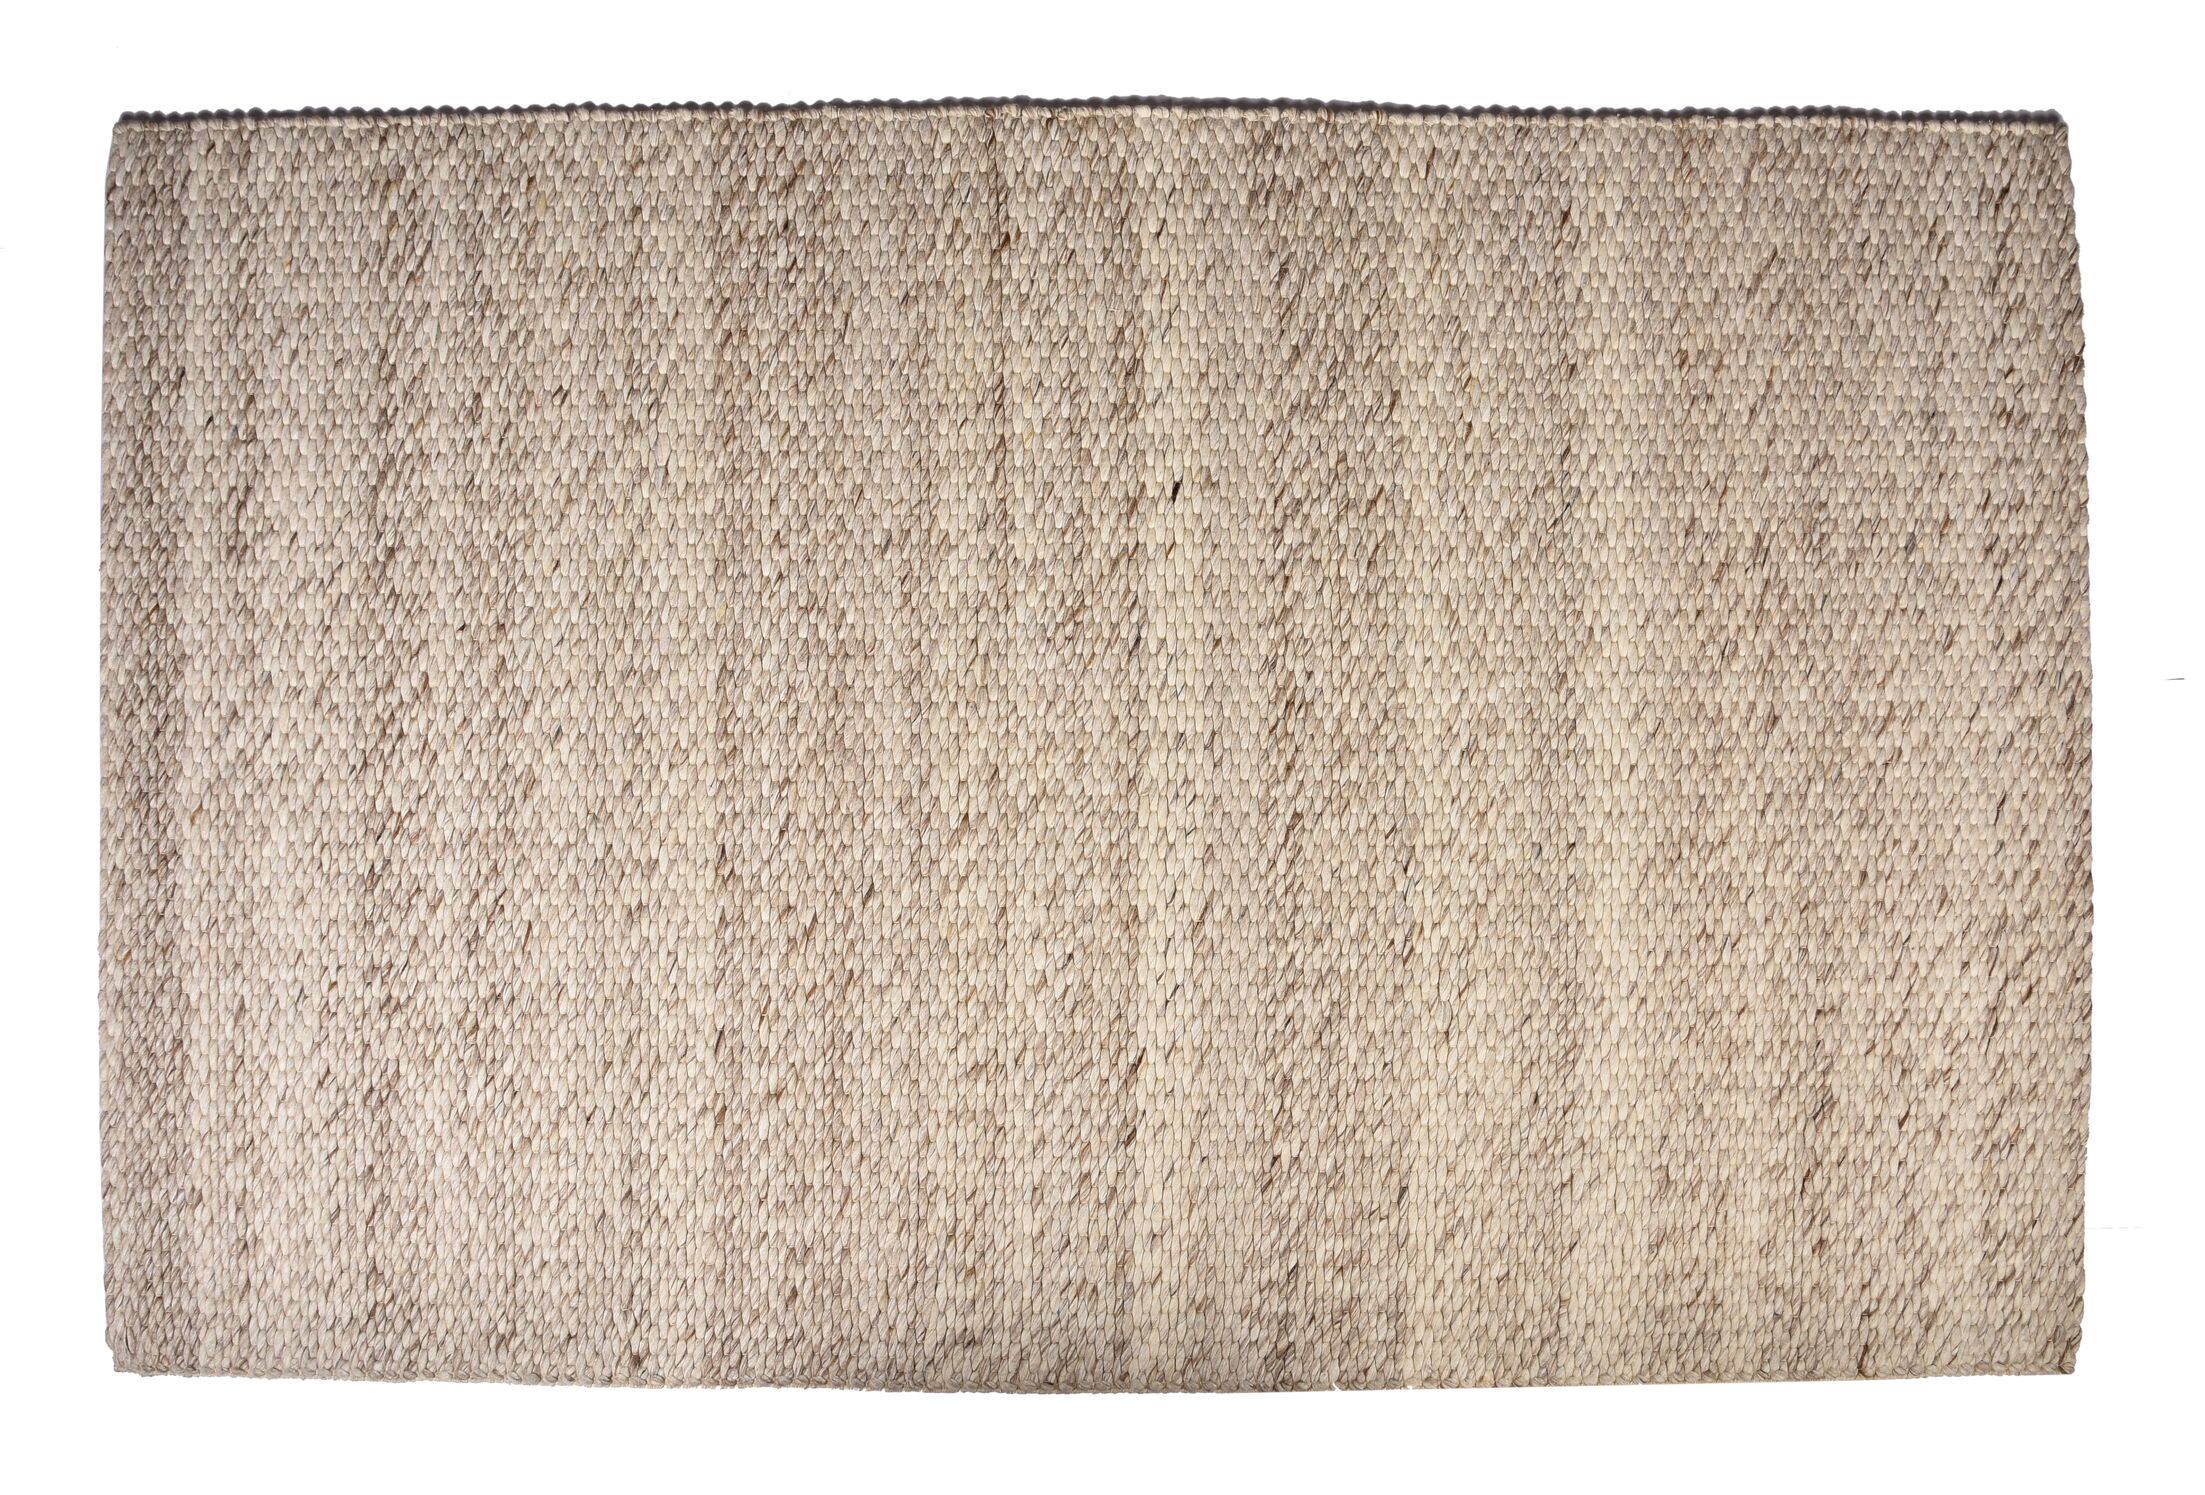 Coto Hand-Woven Wool Copper Area Rug Rug Size: Rectangle 8' x 10'